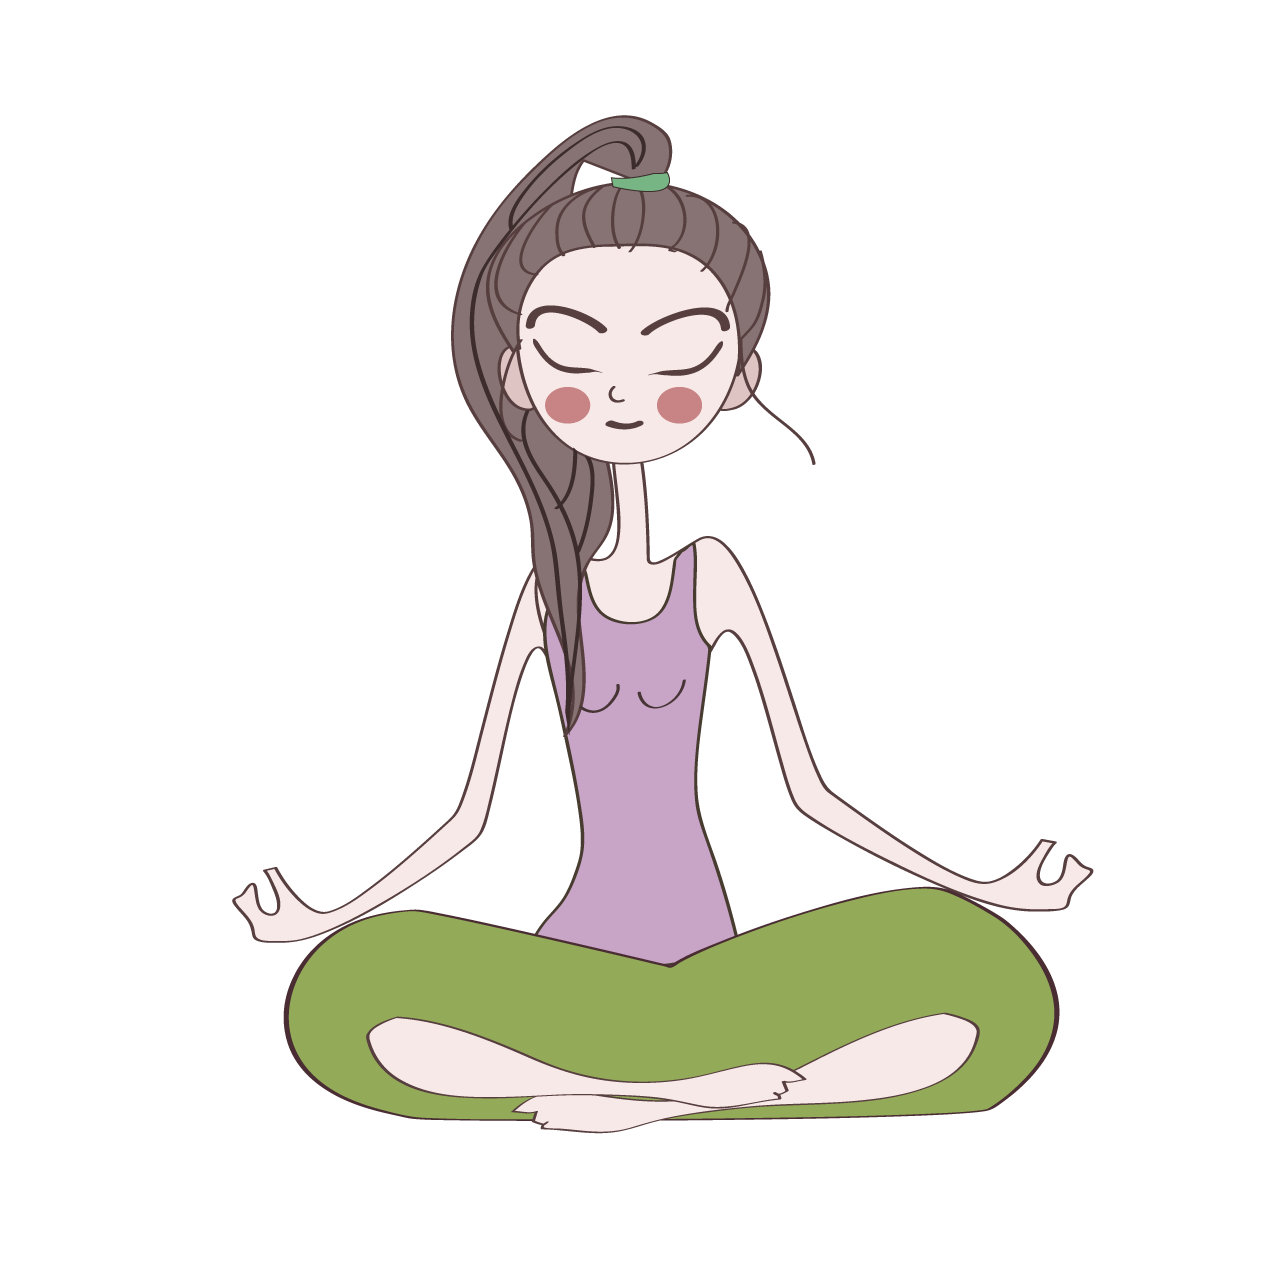 Yoga cartoon image png. Girl transprent free download